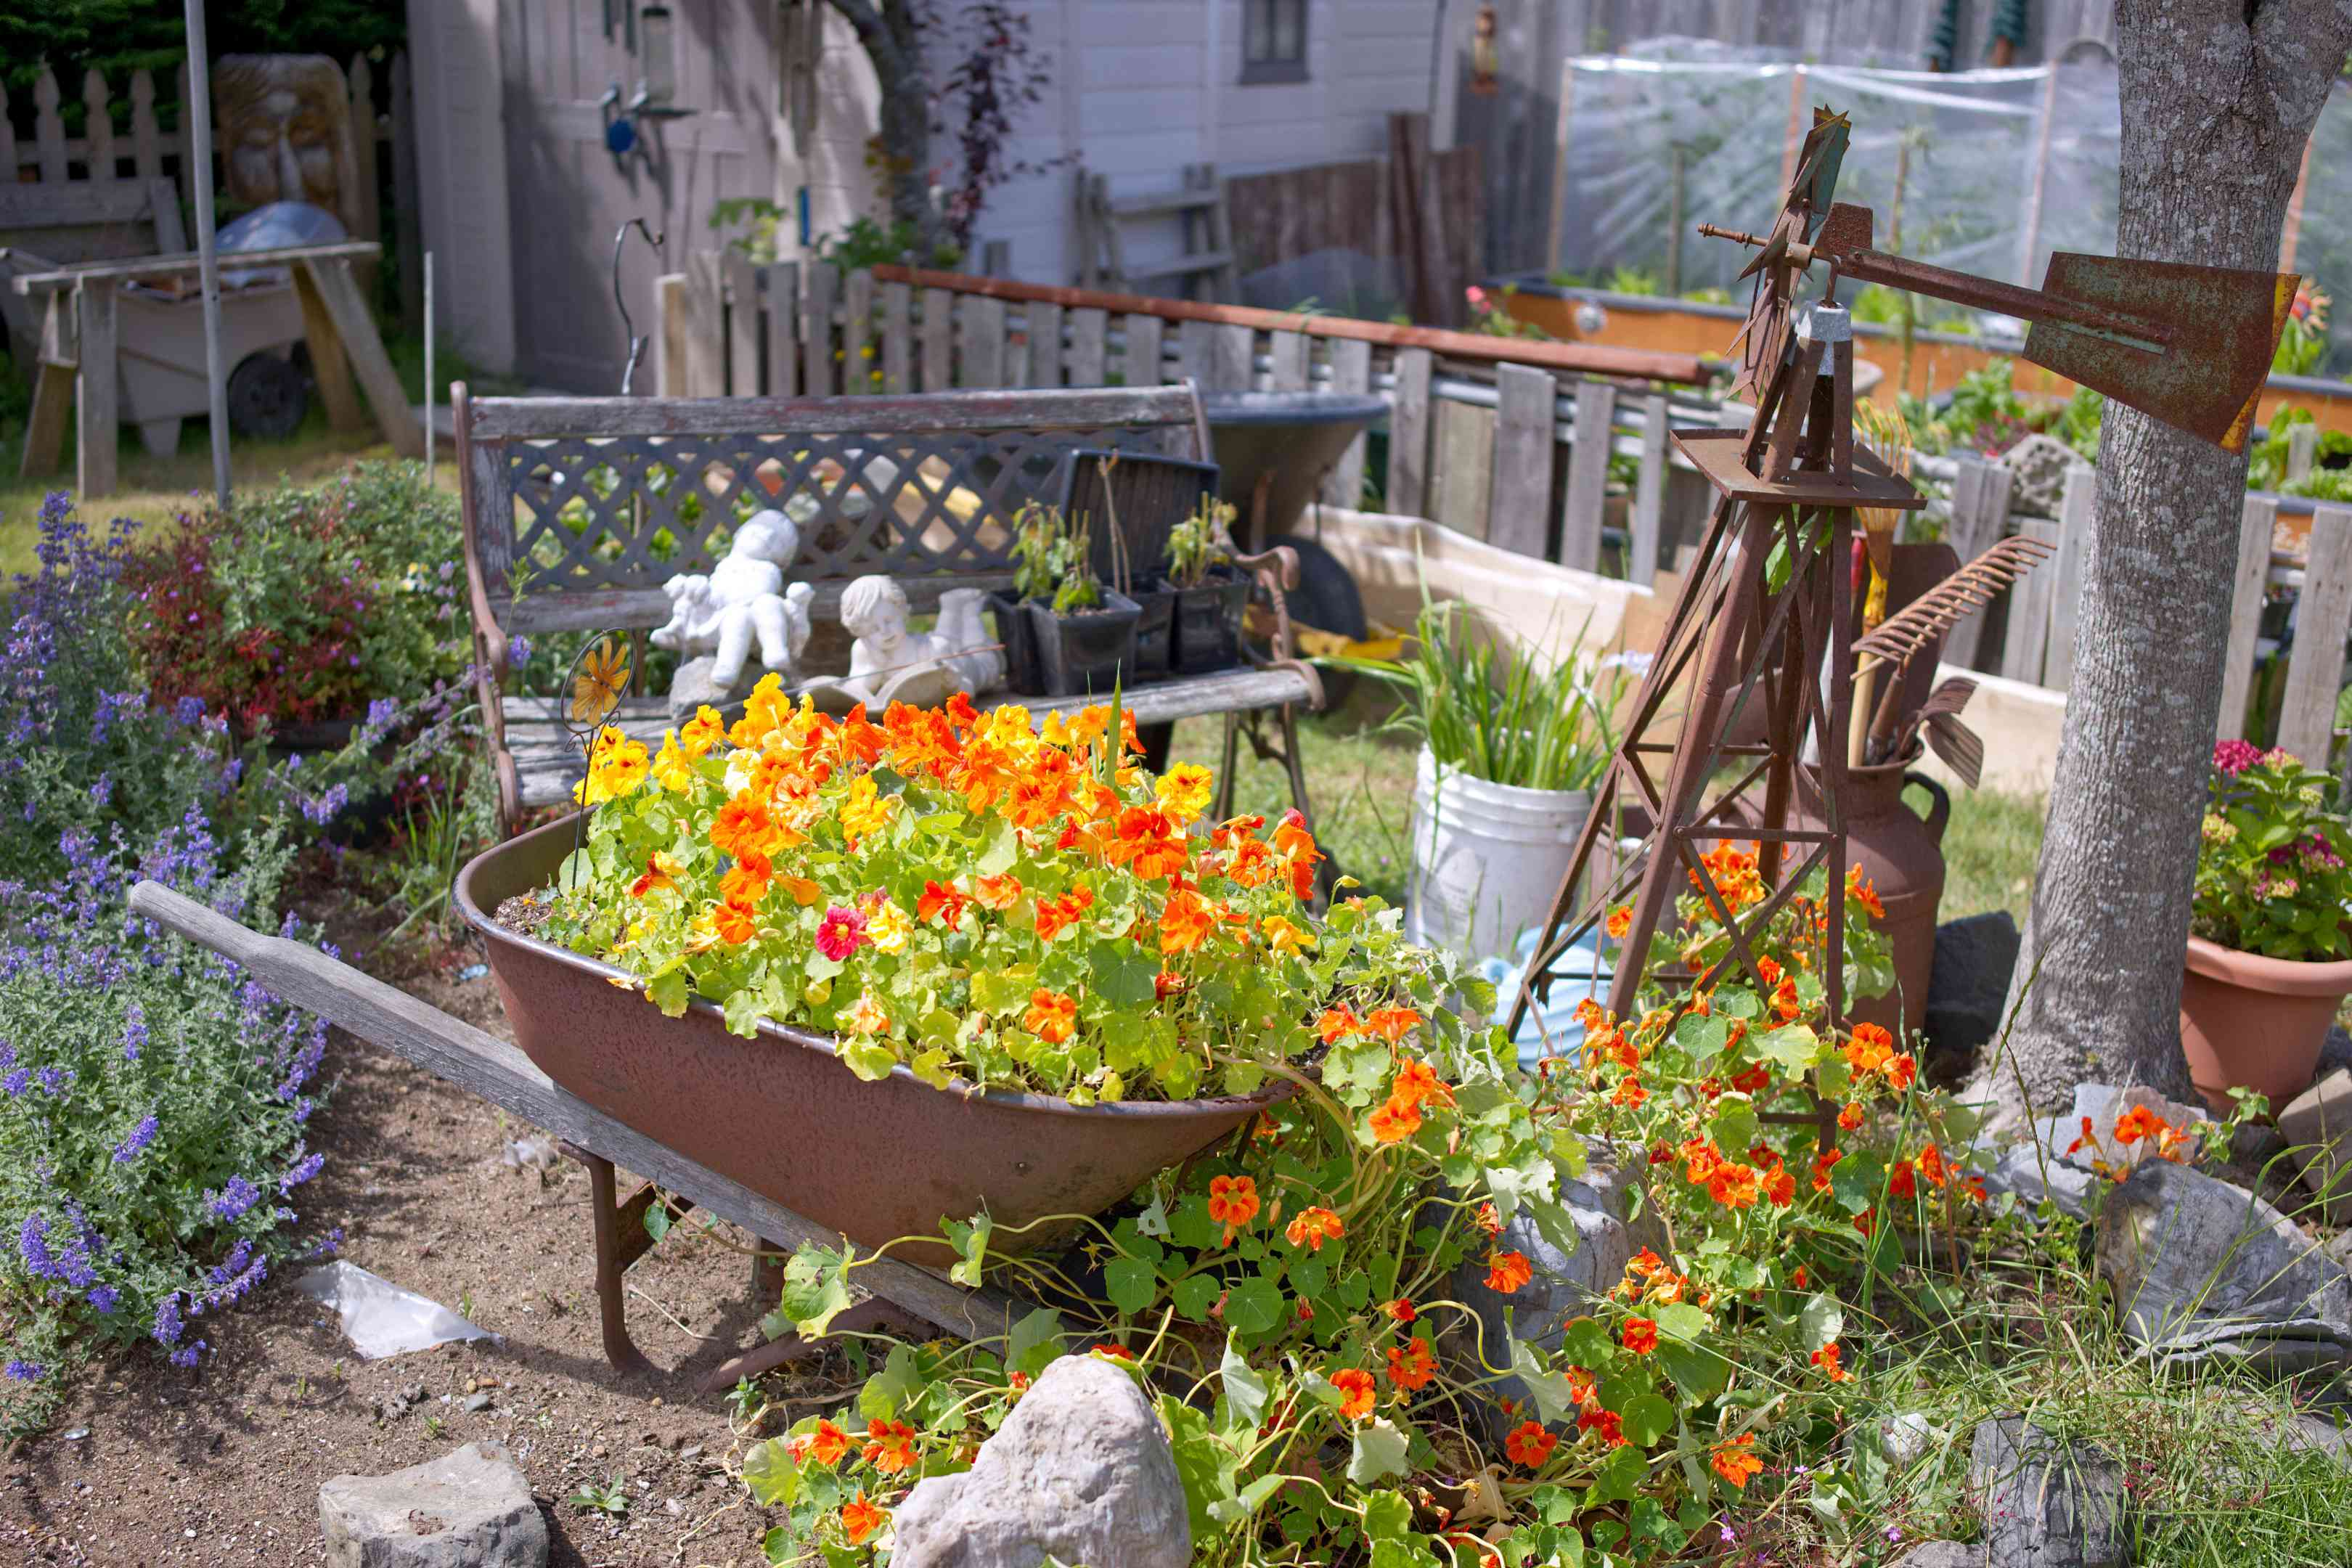 red nasturtiums grow in wheelbarrow and spill over onto ground of small garden